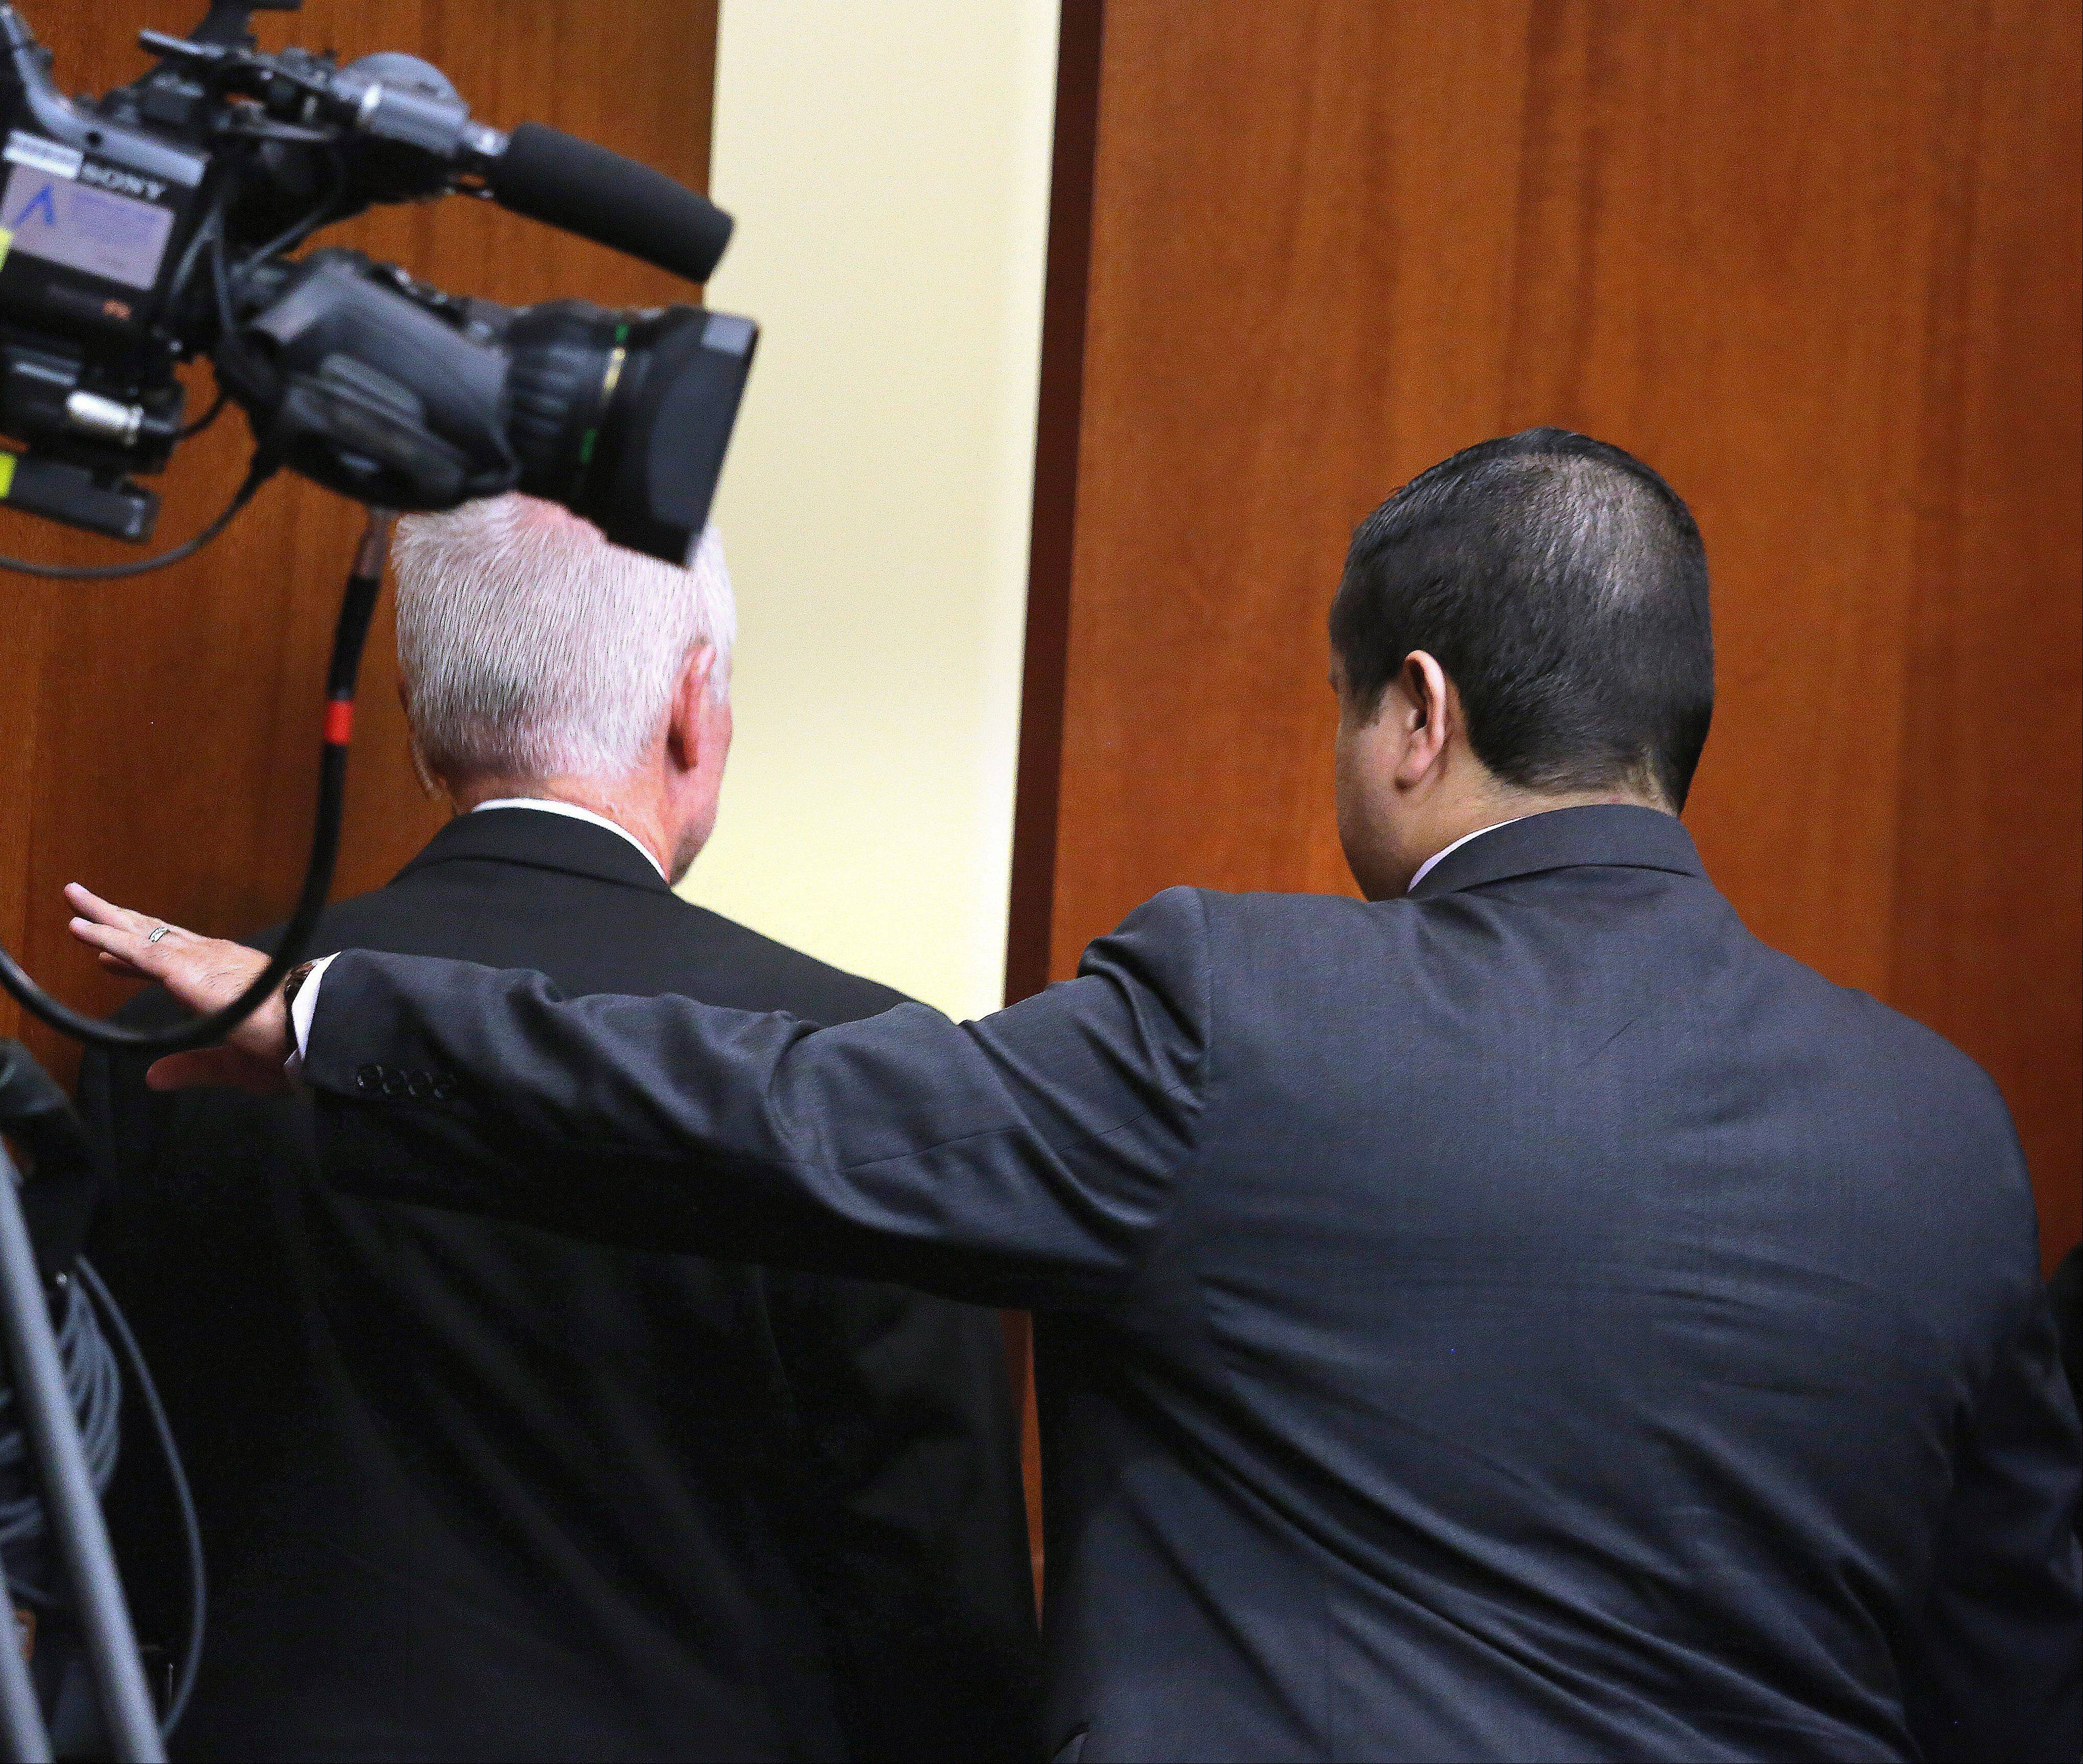 George Zimmerman, right, leaves court after Zimmerman's not guilty verdict was read in Seminole Circuit Court in Sanford, Fla. on Saturday, July 13, 2013. Jurors found Zimmerman not guilty of second-degree murder in the fatal shooting of 17-year-old Trayvon Martin in Sanford, Fla.